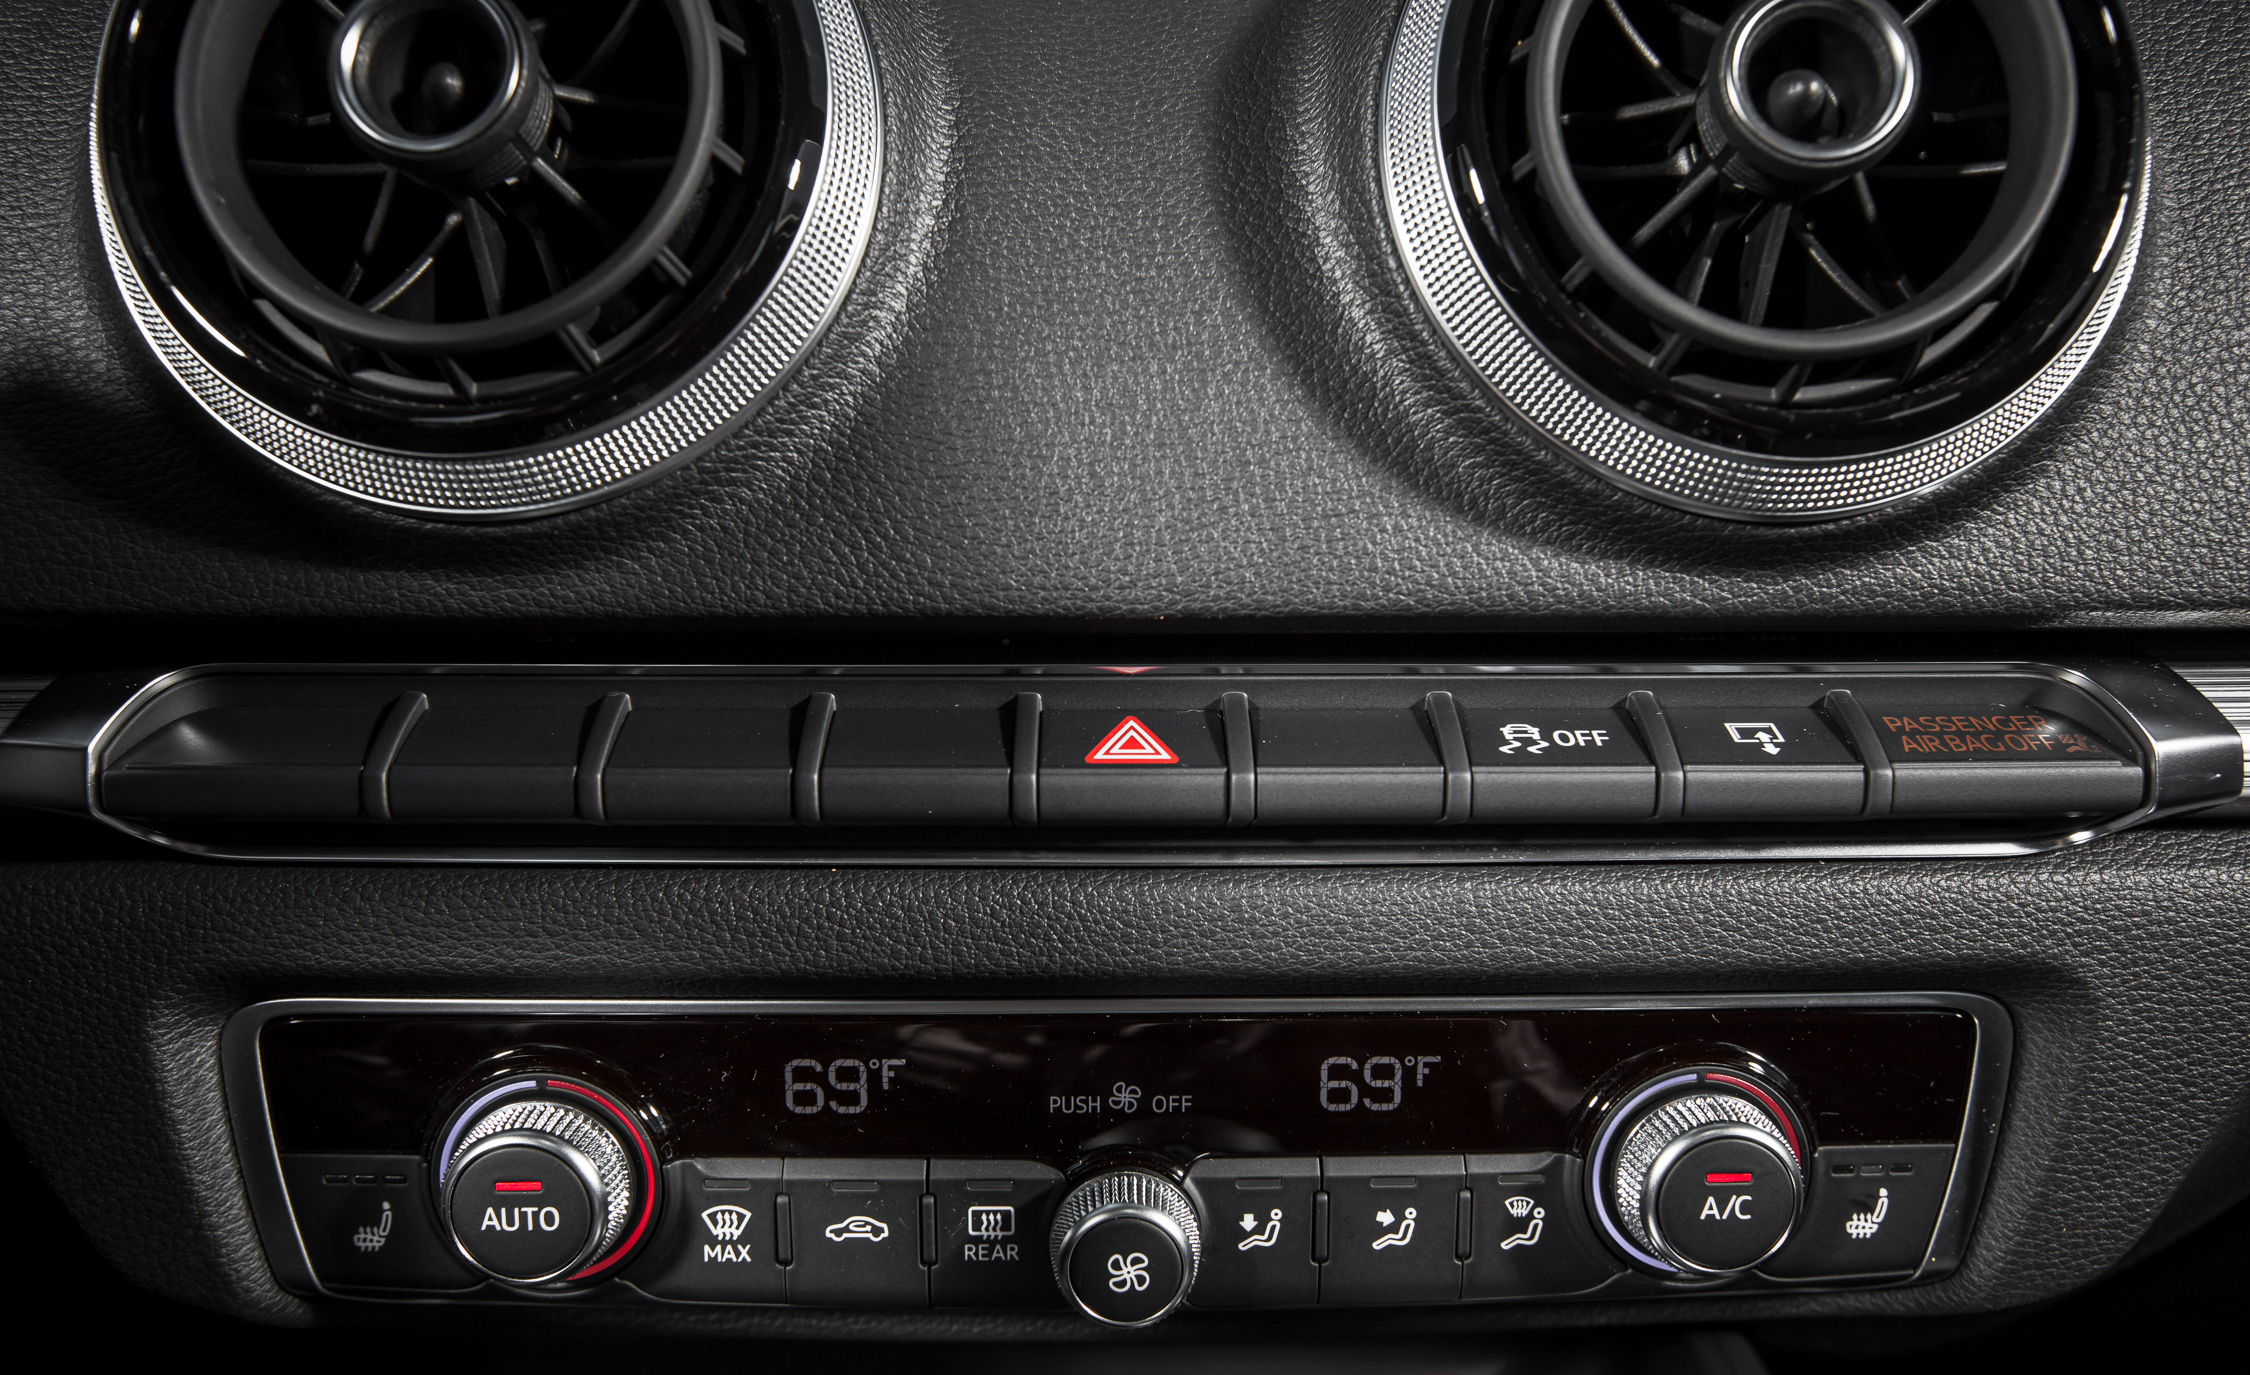 2015 Audi A3 TDI Interior View Climate Control (Photo 41 of 50)